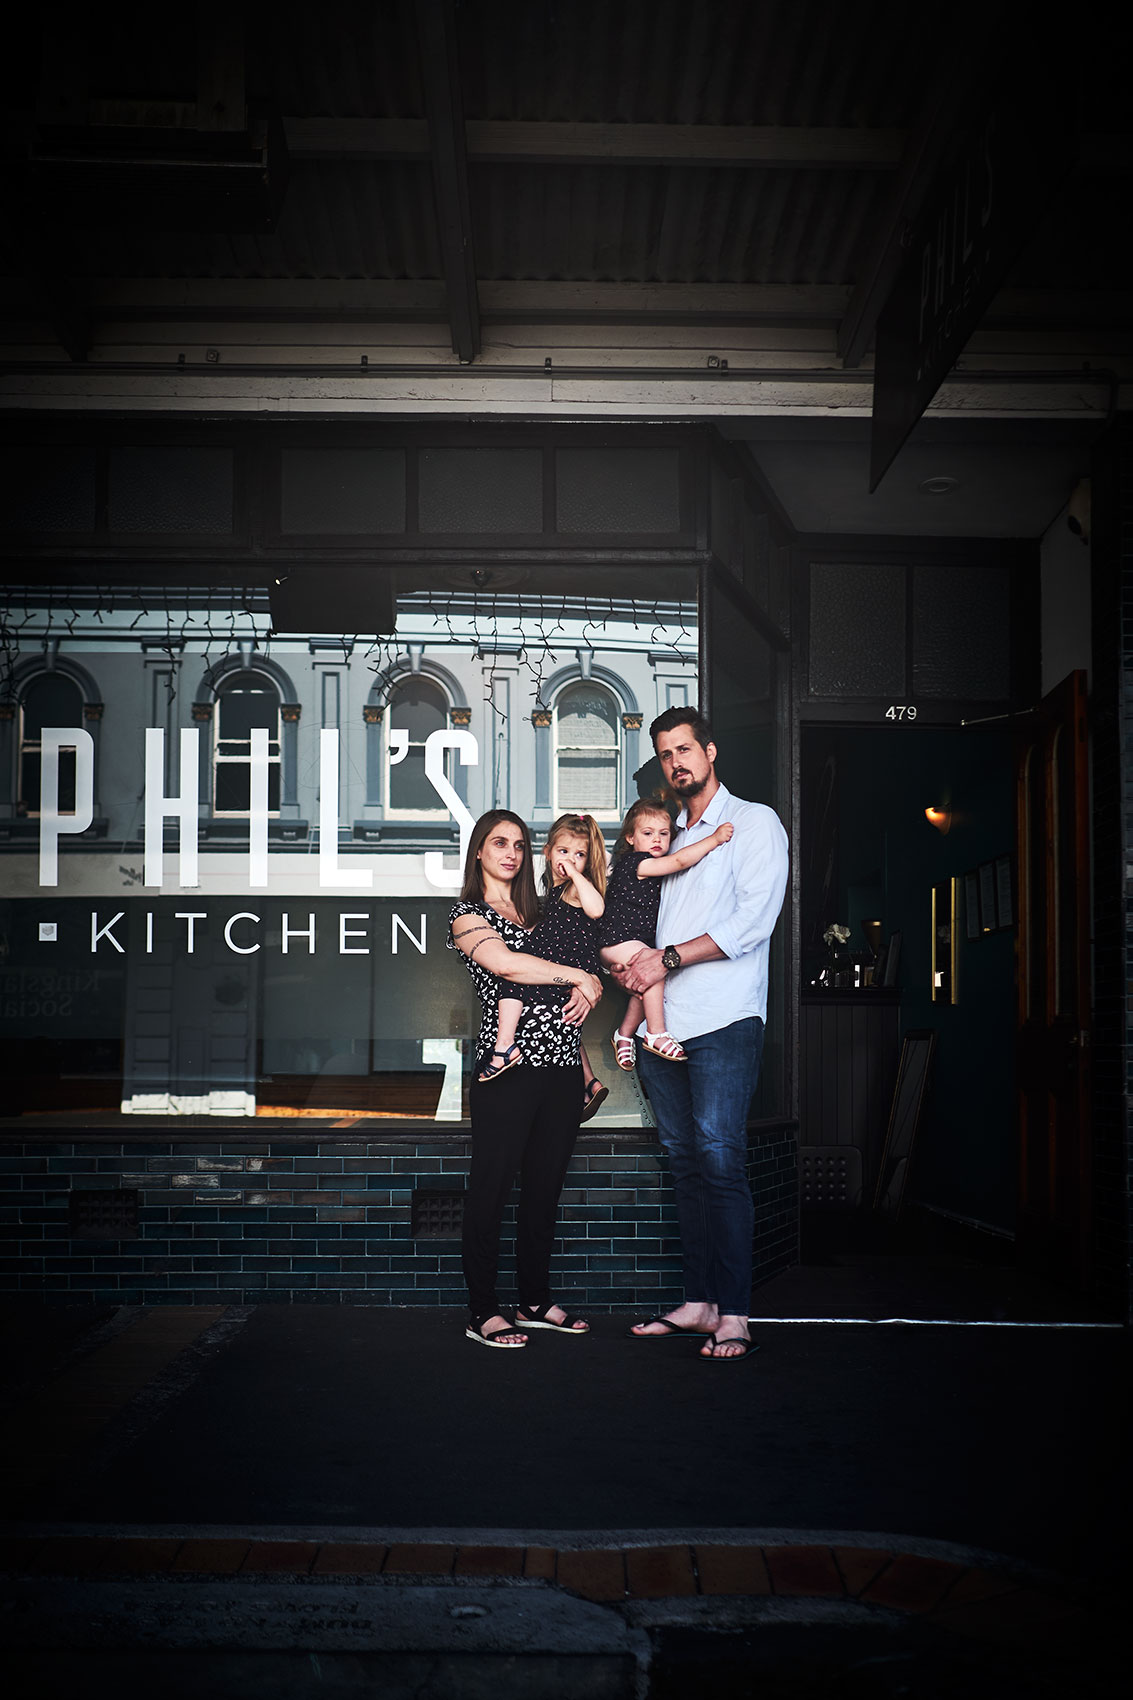 MW_Closed_PhilsKitchen_11_new